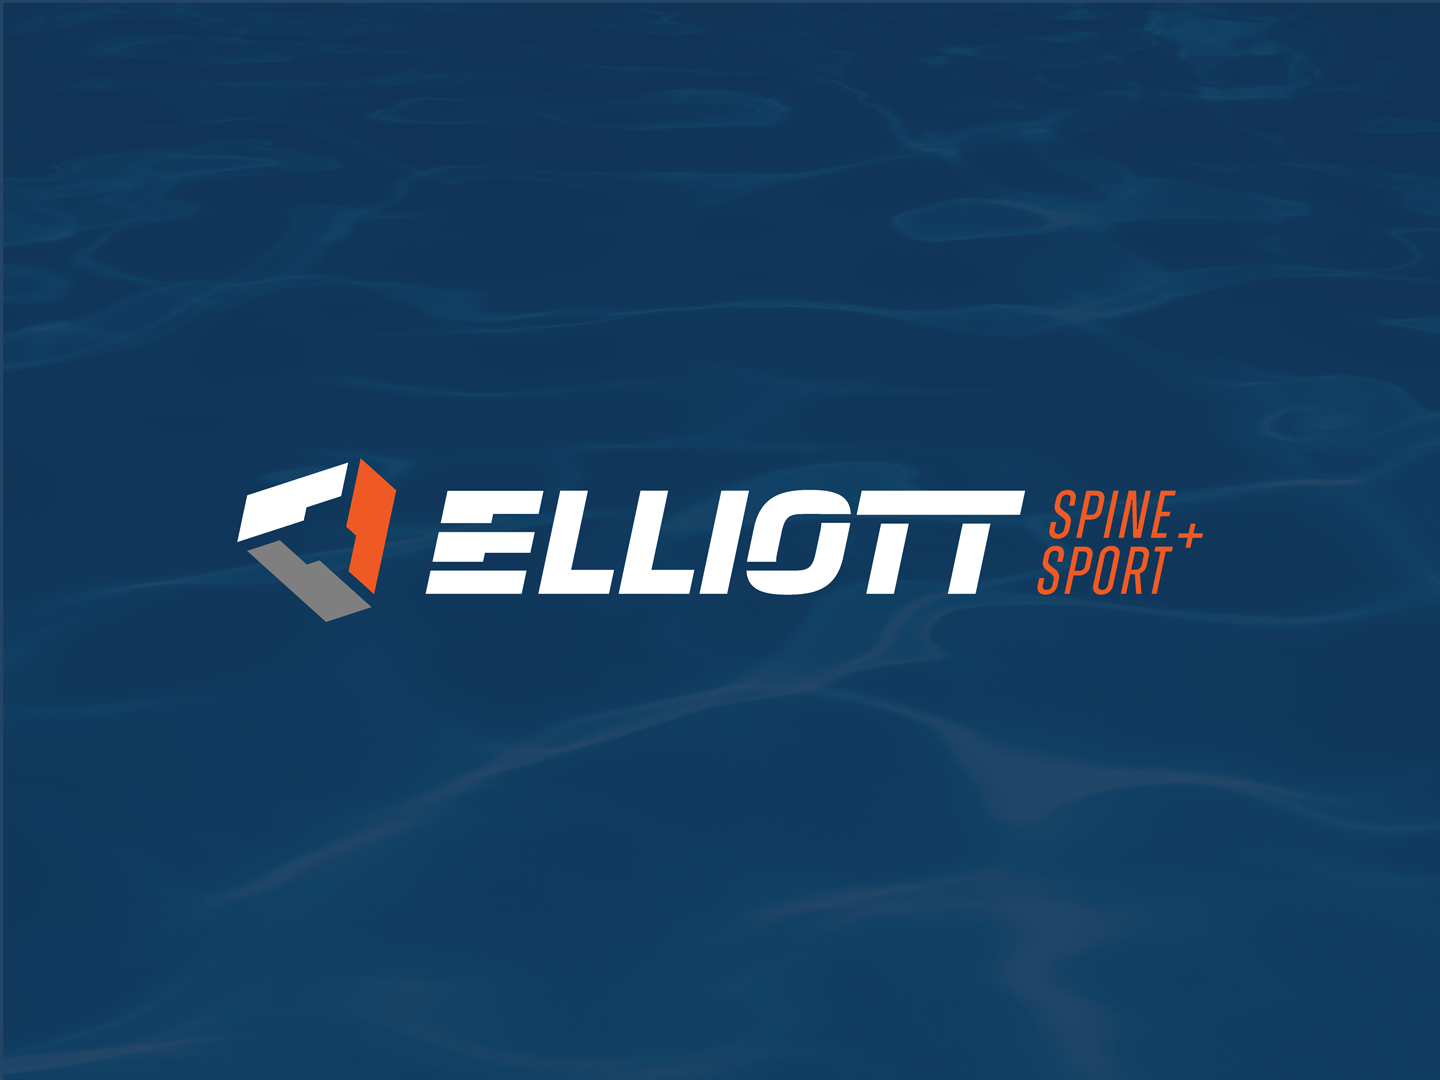 Modern, athletic logo design featuring a tripartite brand mark and a custom letter E mixed with vertebrae for Elliott Spine and Sport.